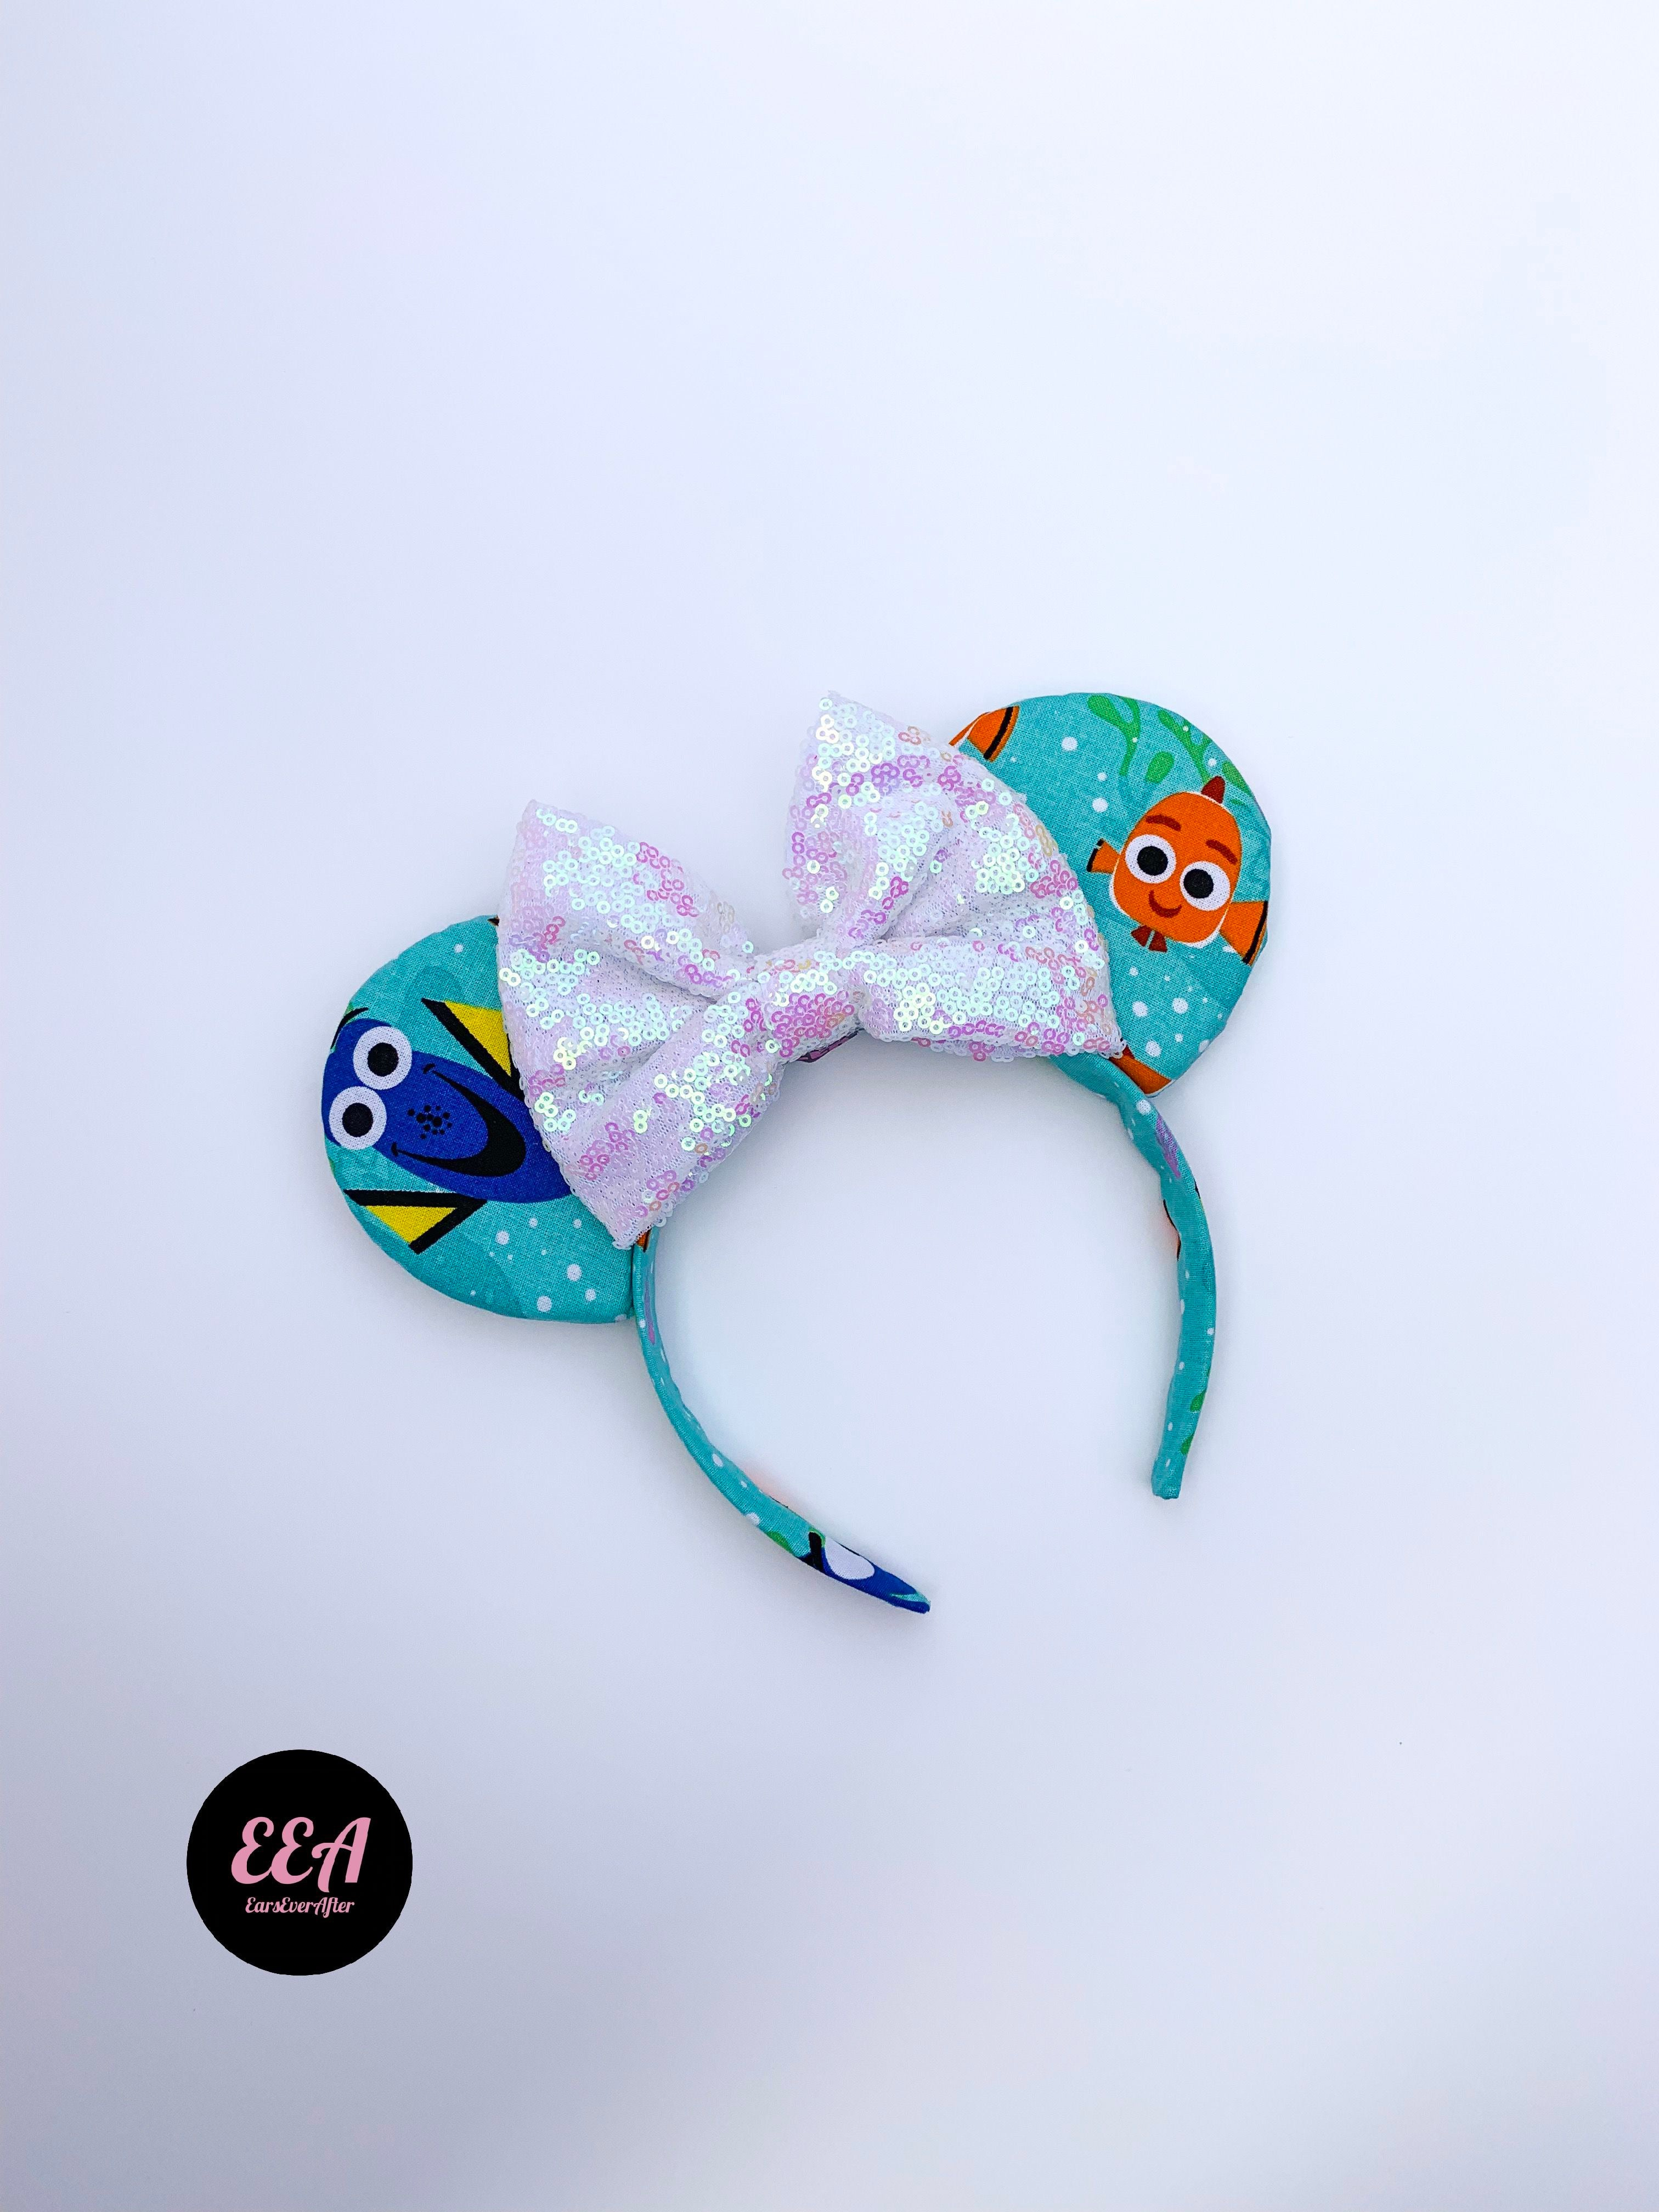 Ears Ever After, Disney Ears, Minnie Mouse Ears, Mickey Ears, Custom Mickey Ears, Mouse Ears, UK Disney Ears, Minnie Ears, Mickey Ears, Disney, Finding Nemo Ears, Finding Dory Ears,